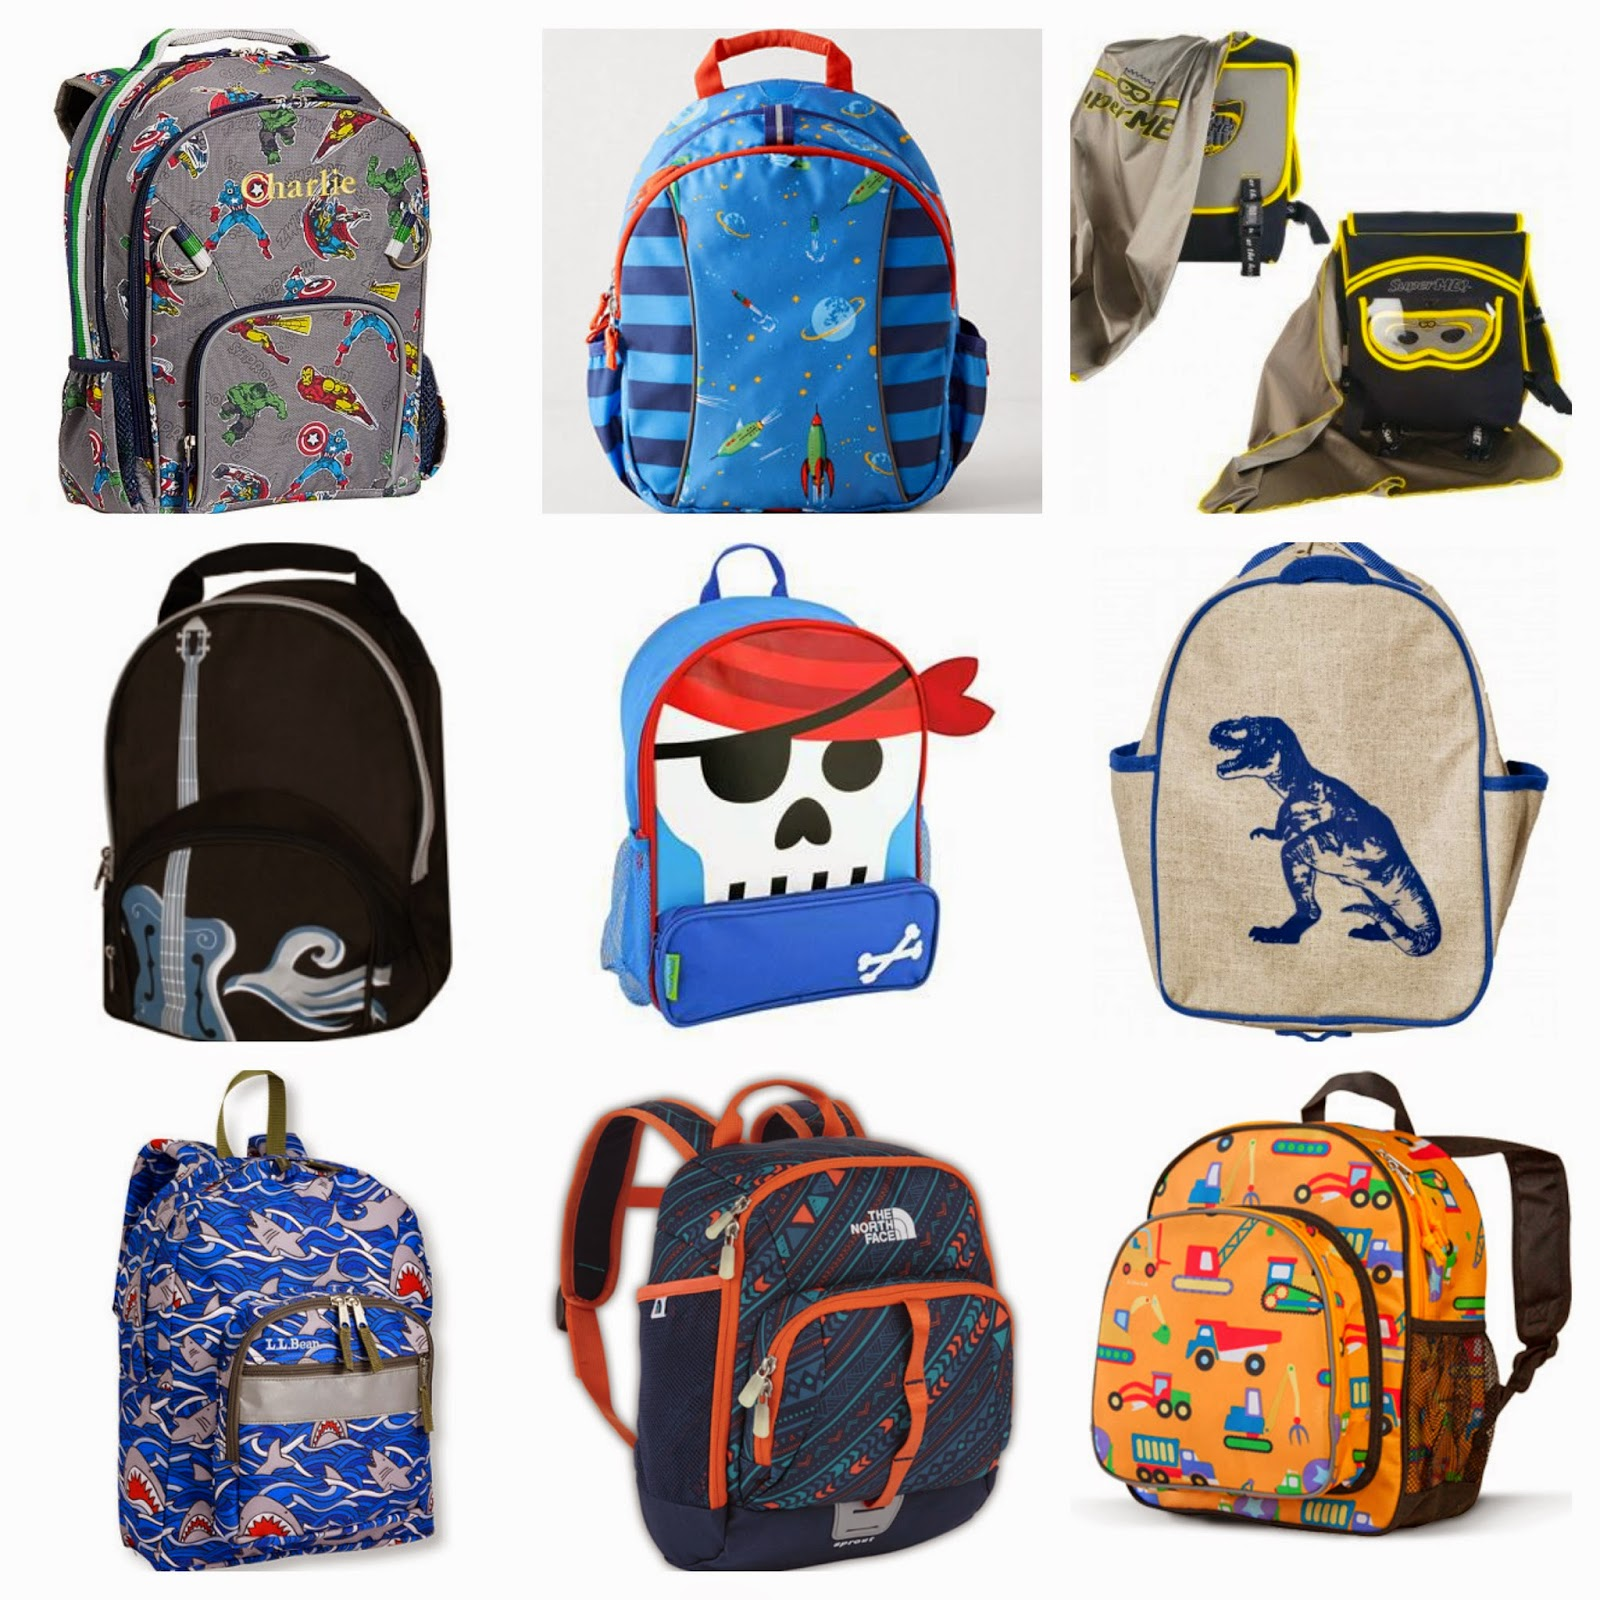 Backpacks For Kids Boys FDR3tnV0